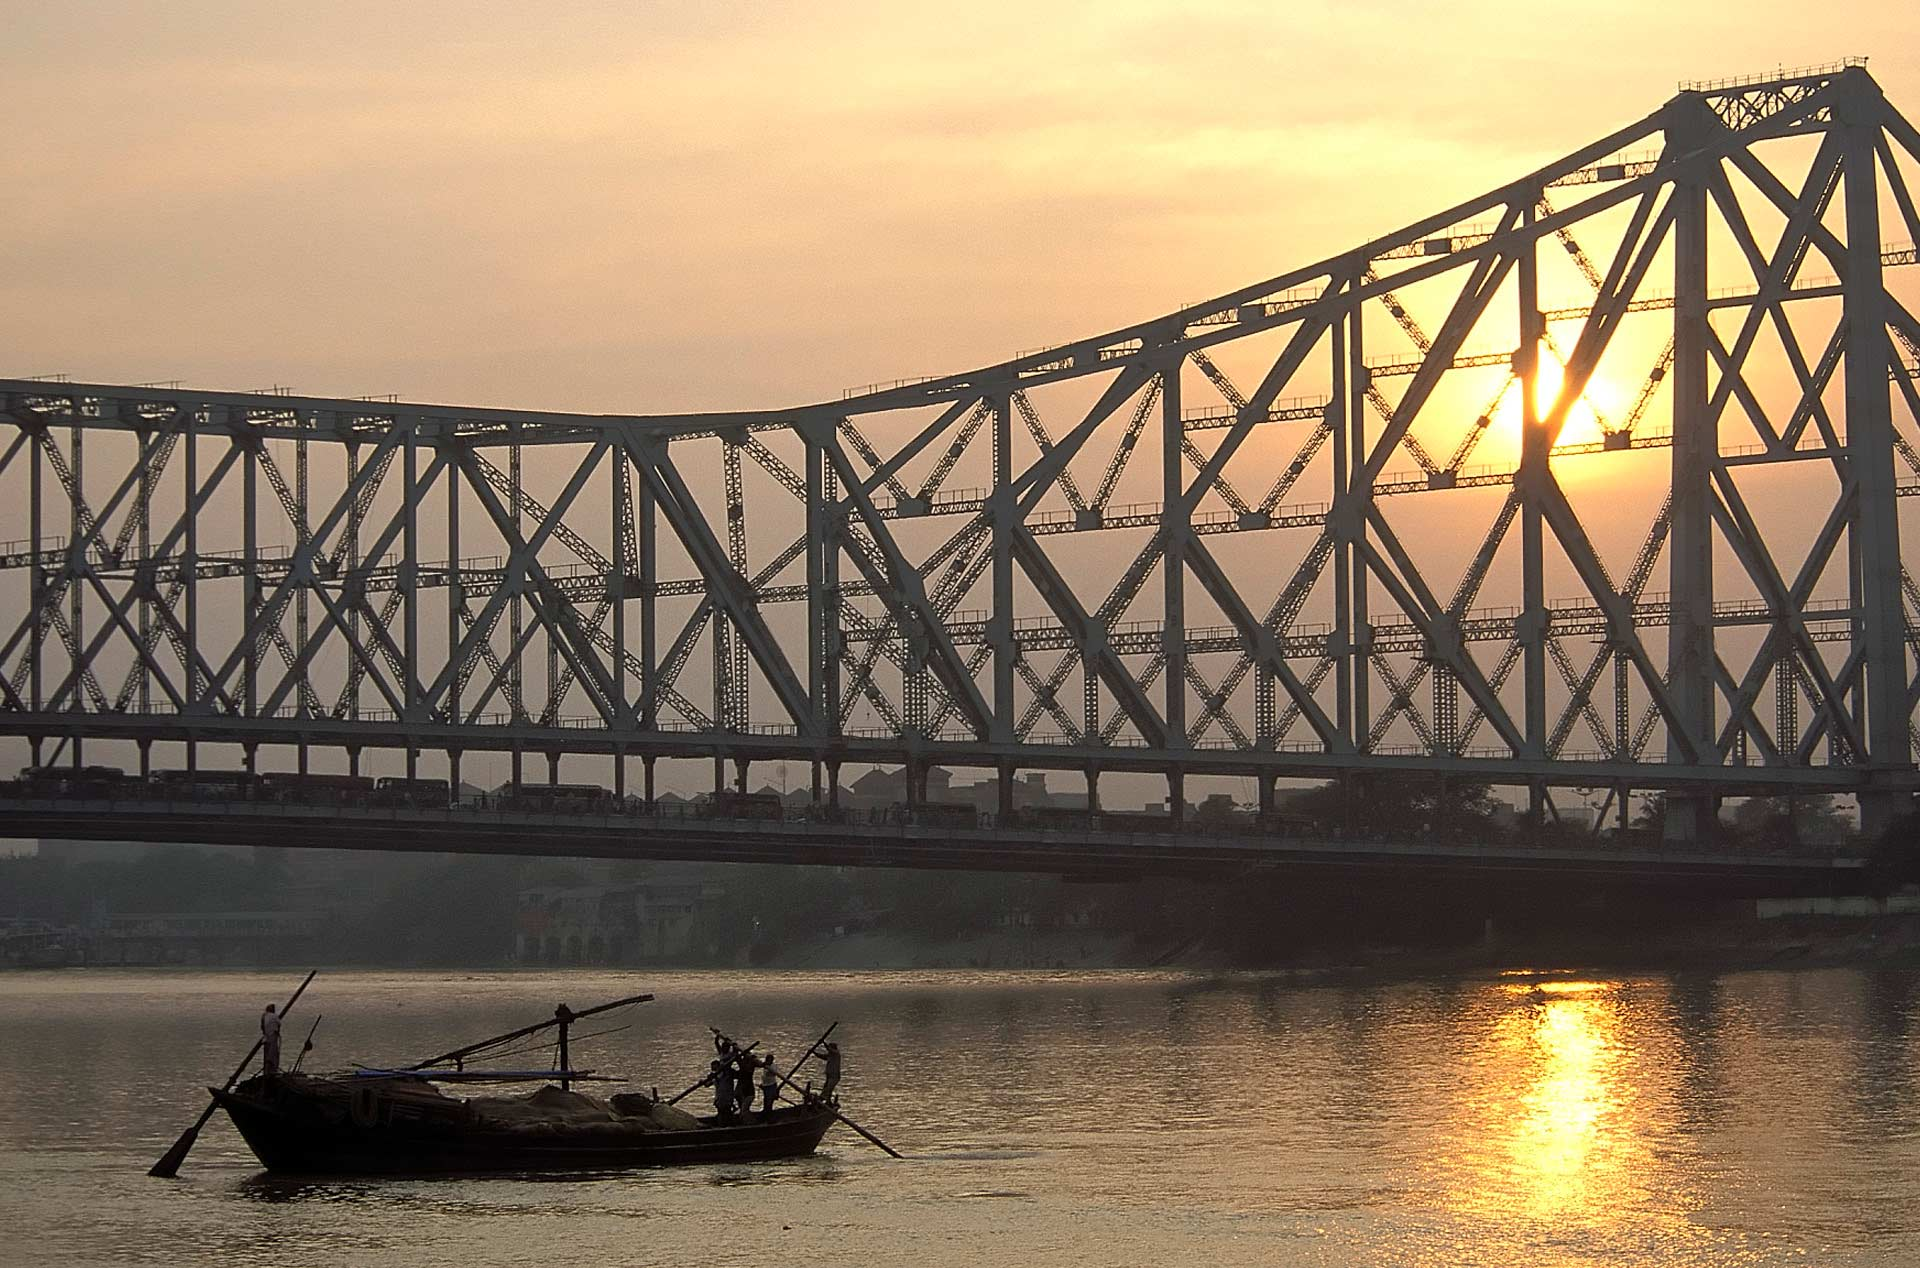 Howrah Bridge over the Hooghly River at sunset, Kolkata, West Bengal, India